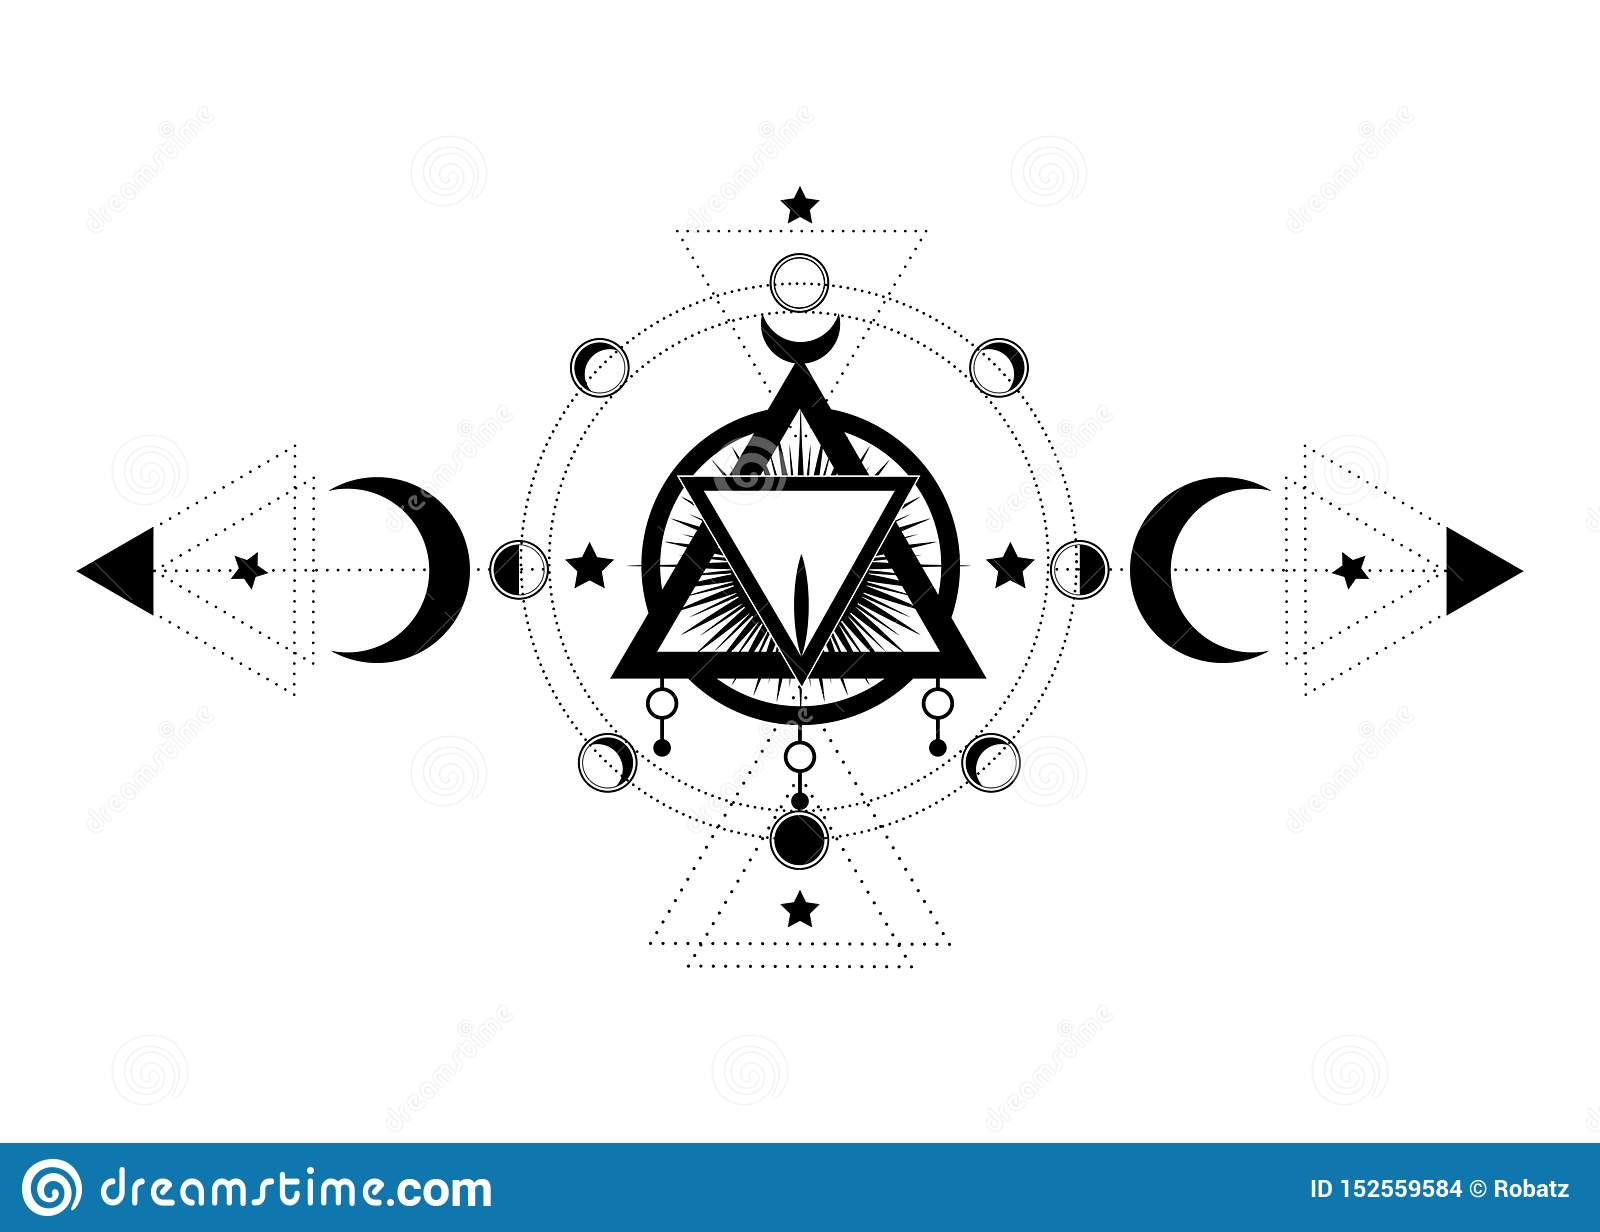 Masonic Symbol The Sacred Vagina Inside Triple Moon Pagan Wicca Moon Goddess Icon Vector Illustration Tattoo Astrology Alchemy Stock Vector Illustration Of Moon Crescent 152559584